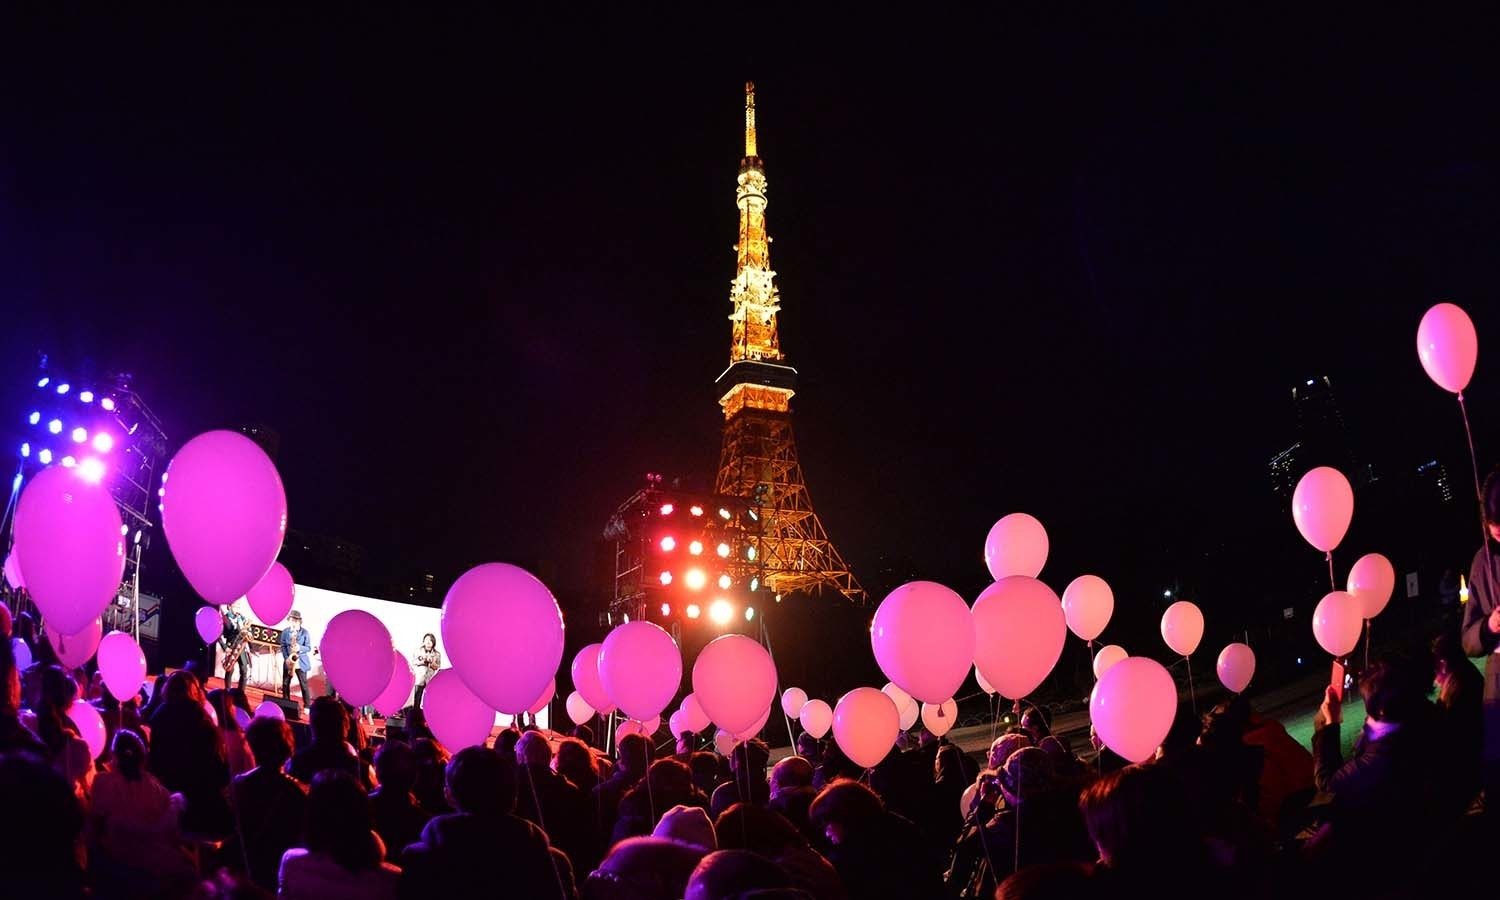 People gather to release balloons to celebrate the New Year during an annual countdown ceremony at the Prince Park Tower in Tokyo on December 31, 2015.  More than 1,000 balloons were to be released into the air, carrying with them new year wishes.  AFP PHOTO / KAZUHIRO NOGI